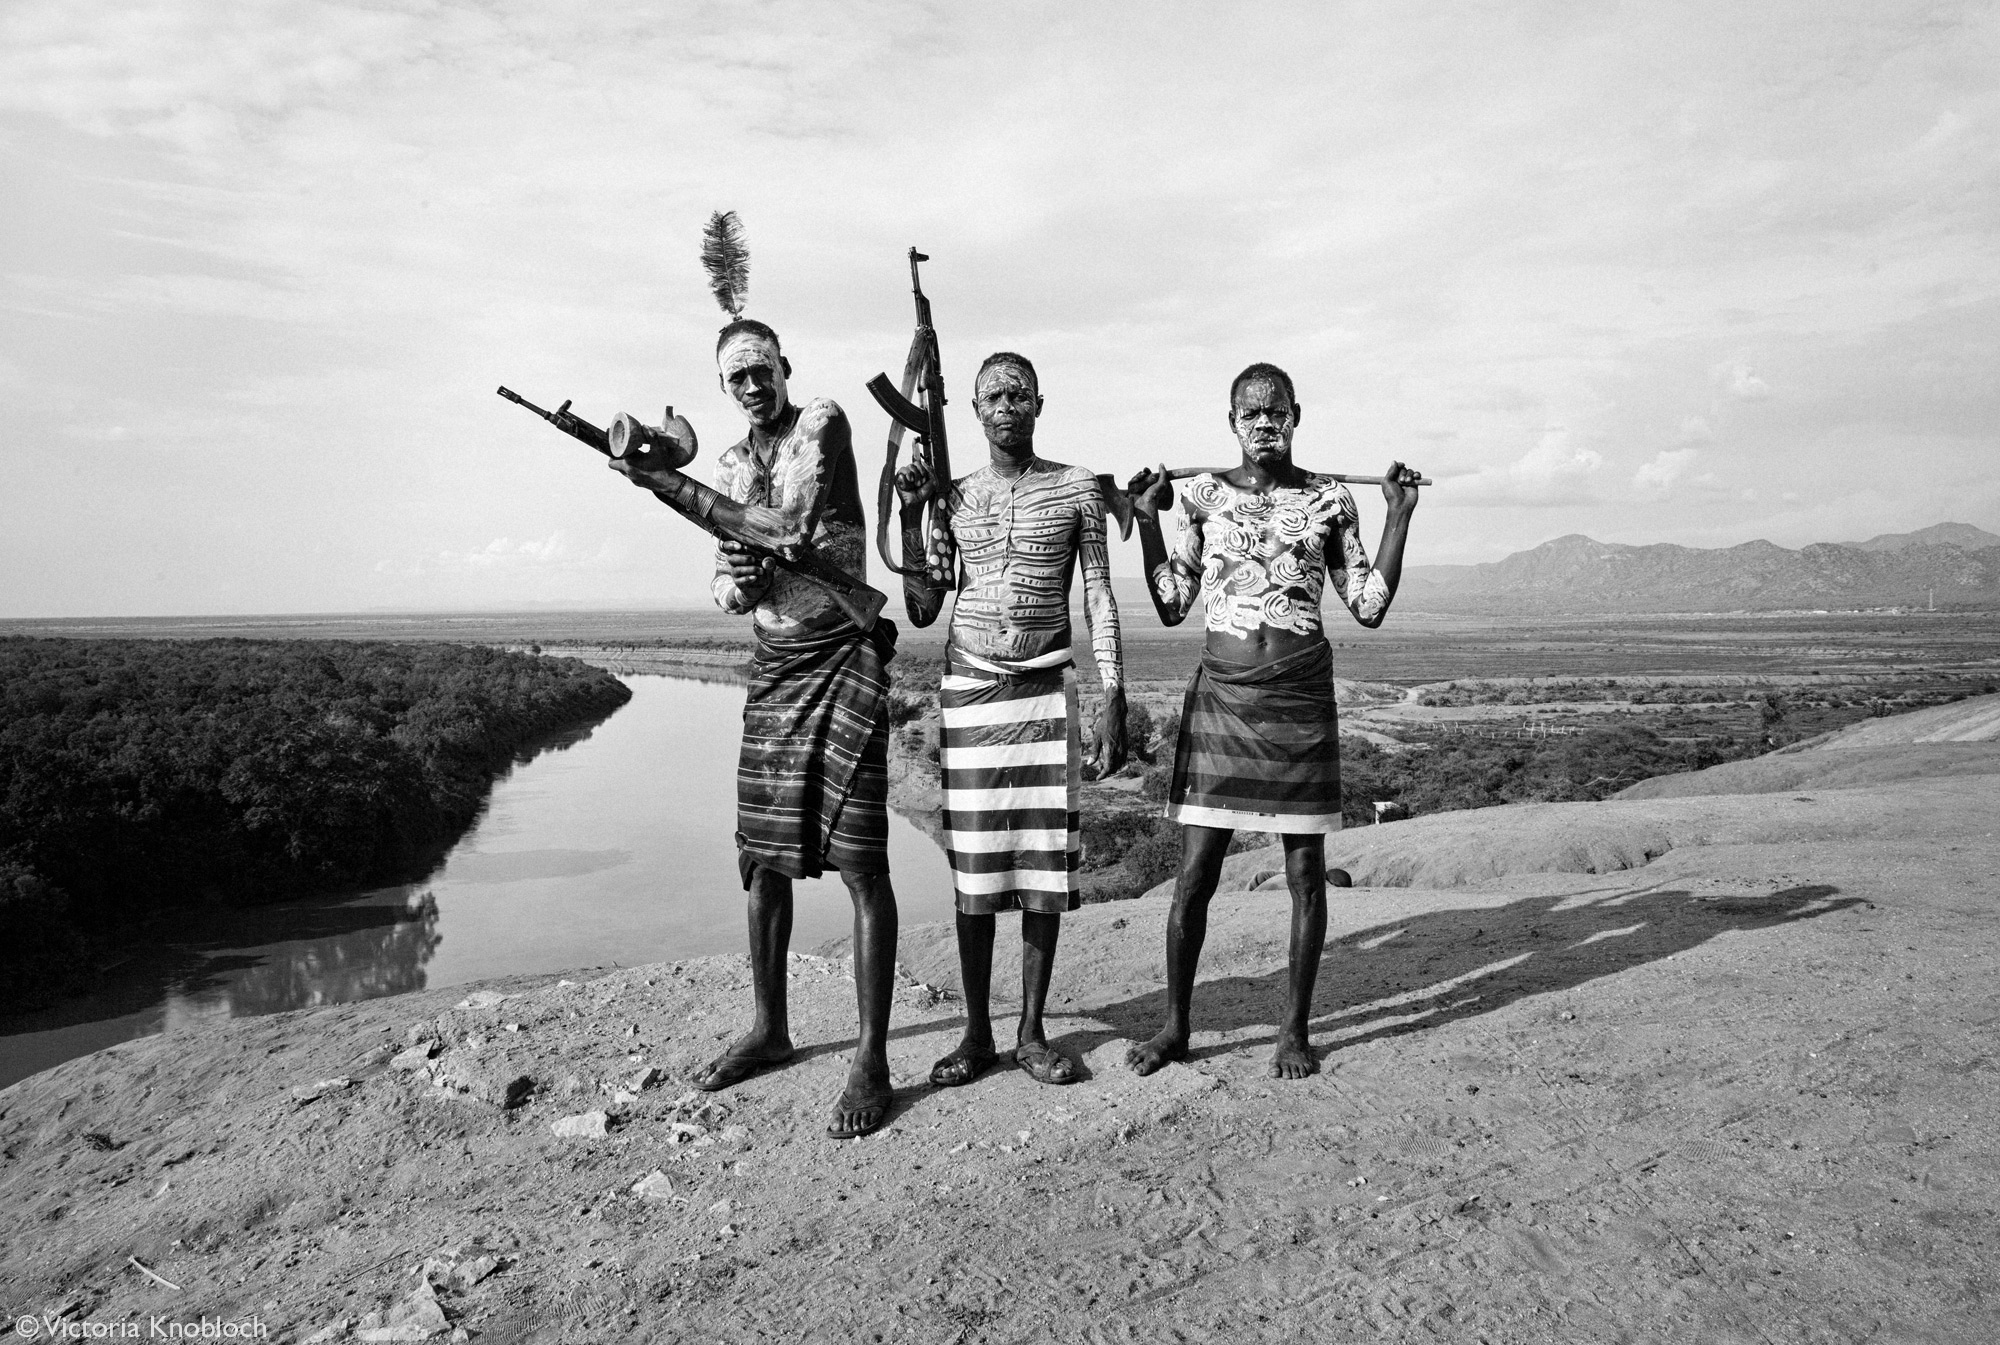 Men from the Karo tribe posing with their AK47s, Omo Valley, Ethiopia